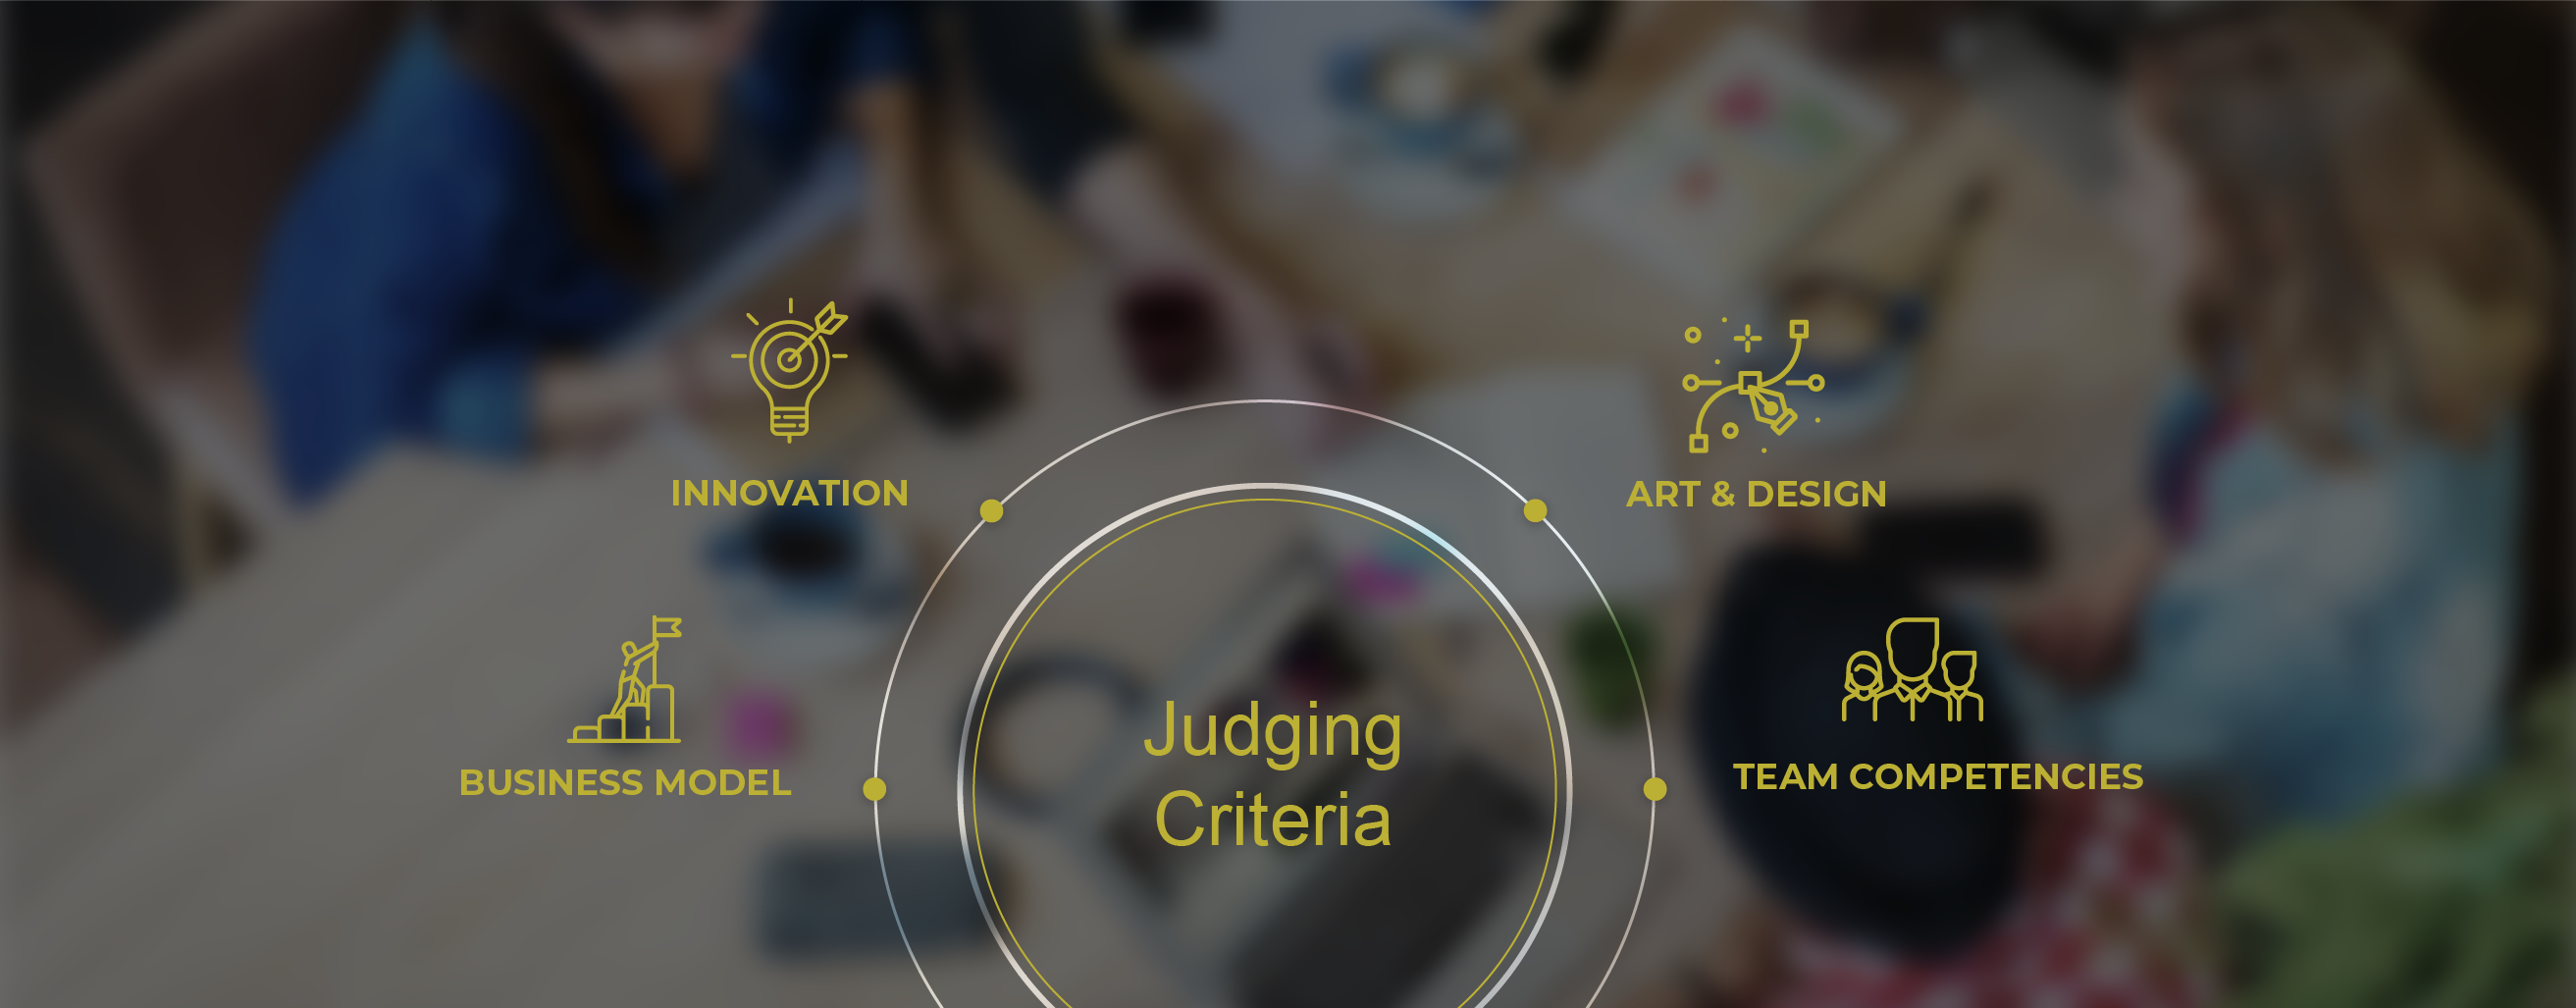 AAL Cup Judging Criteria includes: Innovation – Art & Design – Business Model – Team Competencies